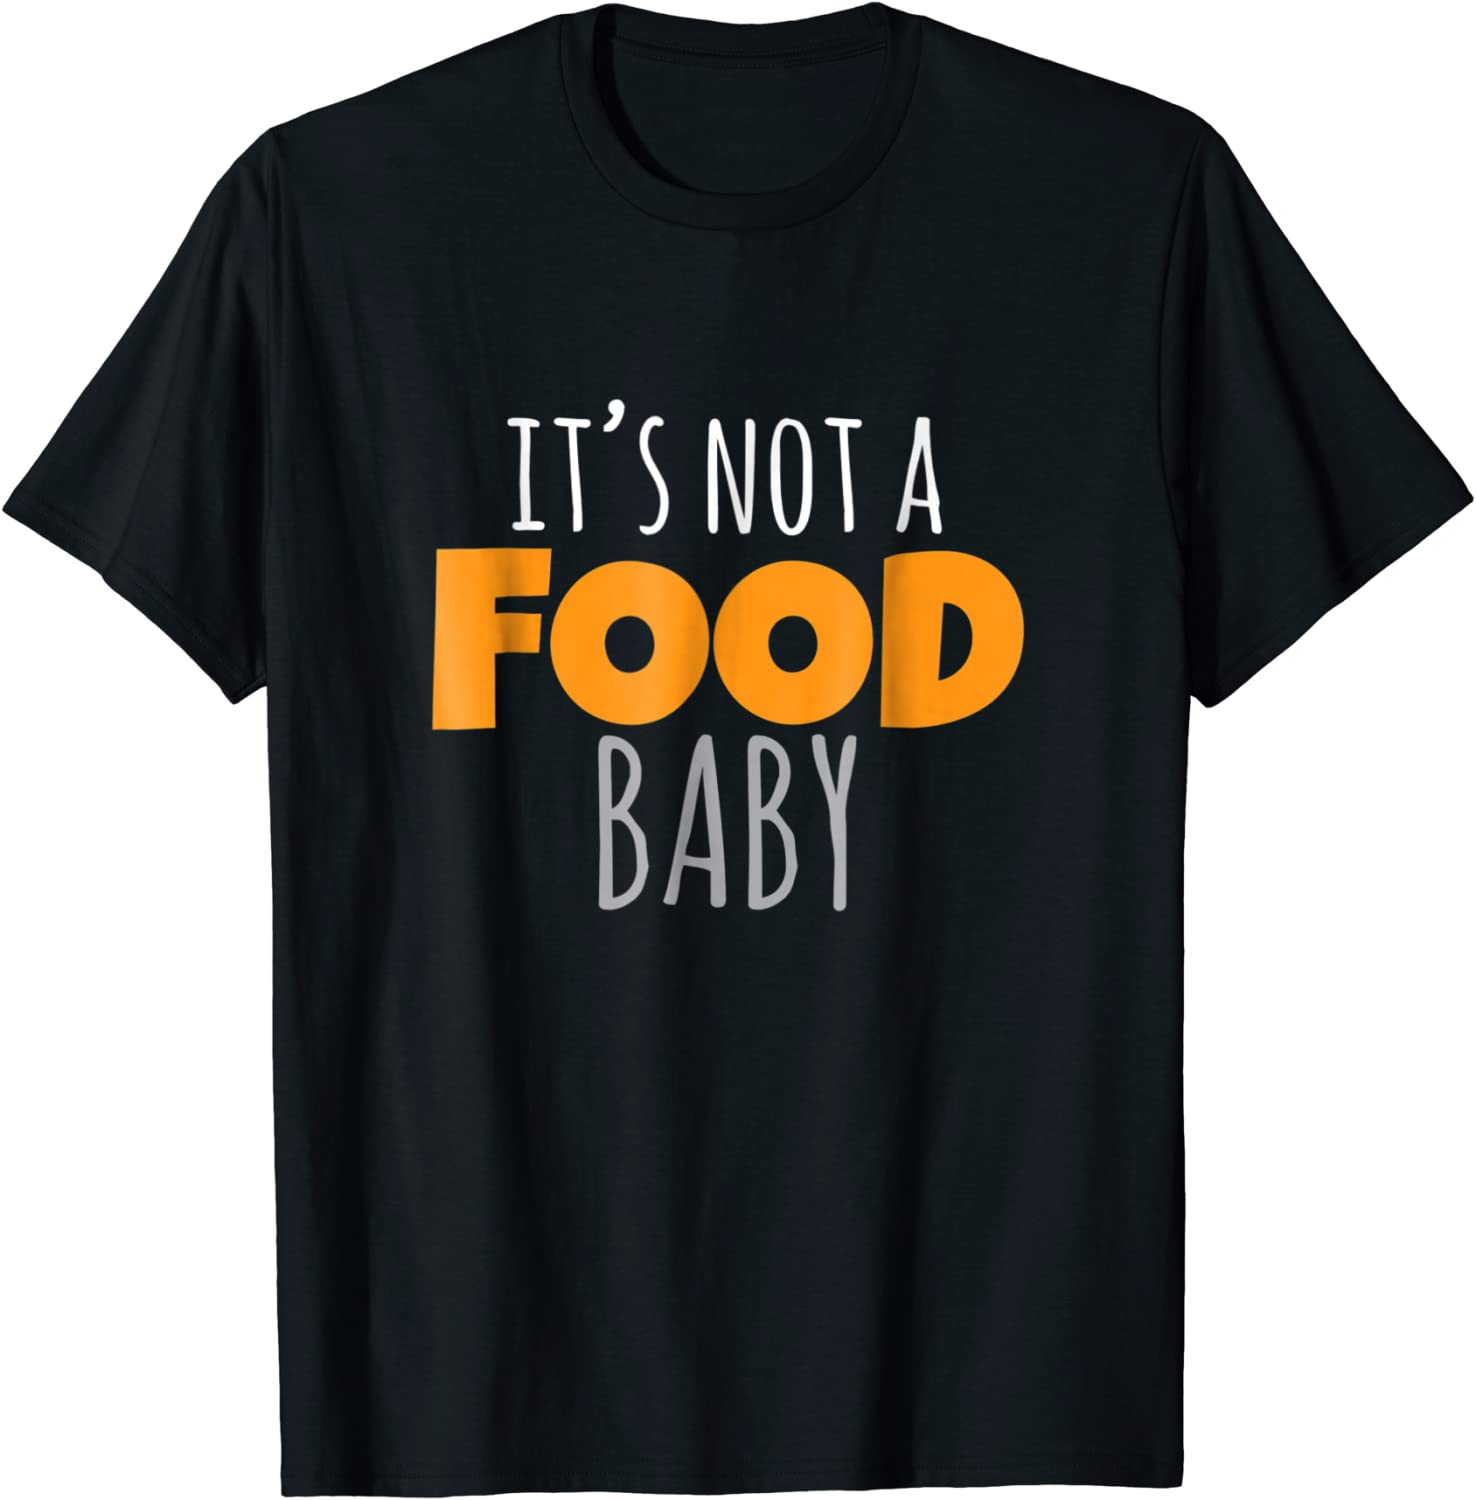 It's Not a Food Baby T-Shirt Funny Pregnancy Mom Mommy Tee